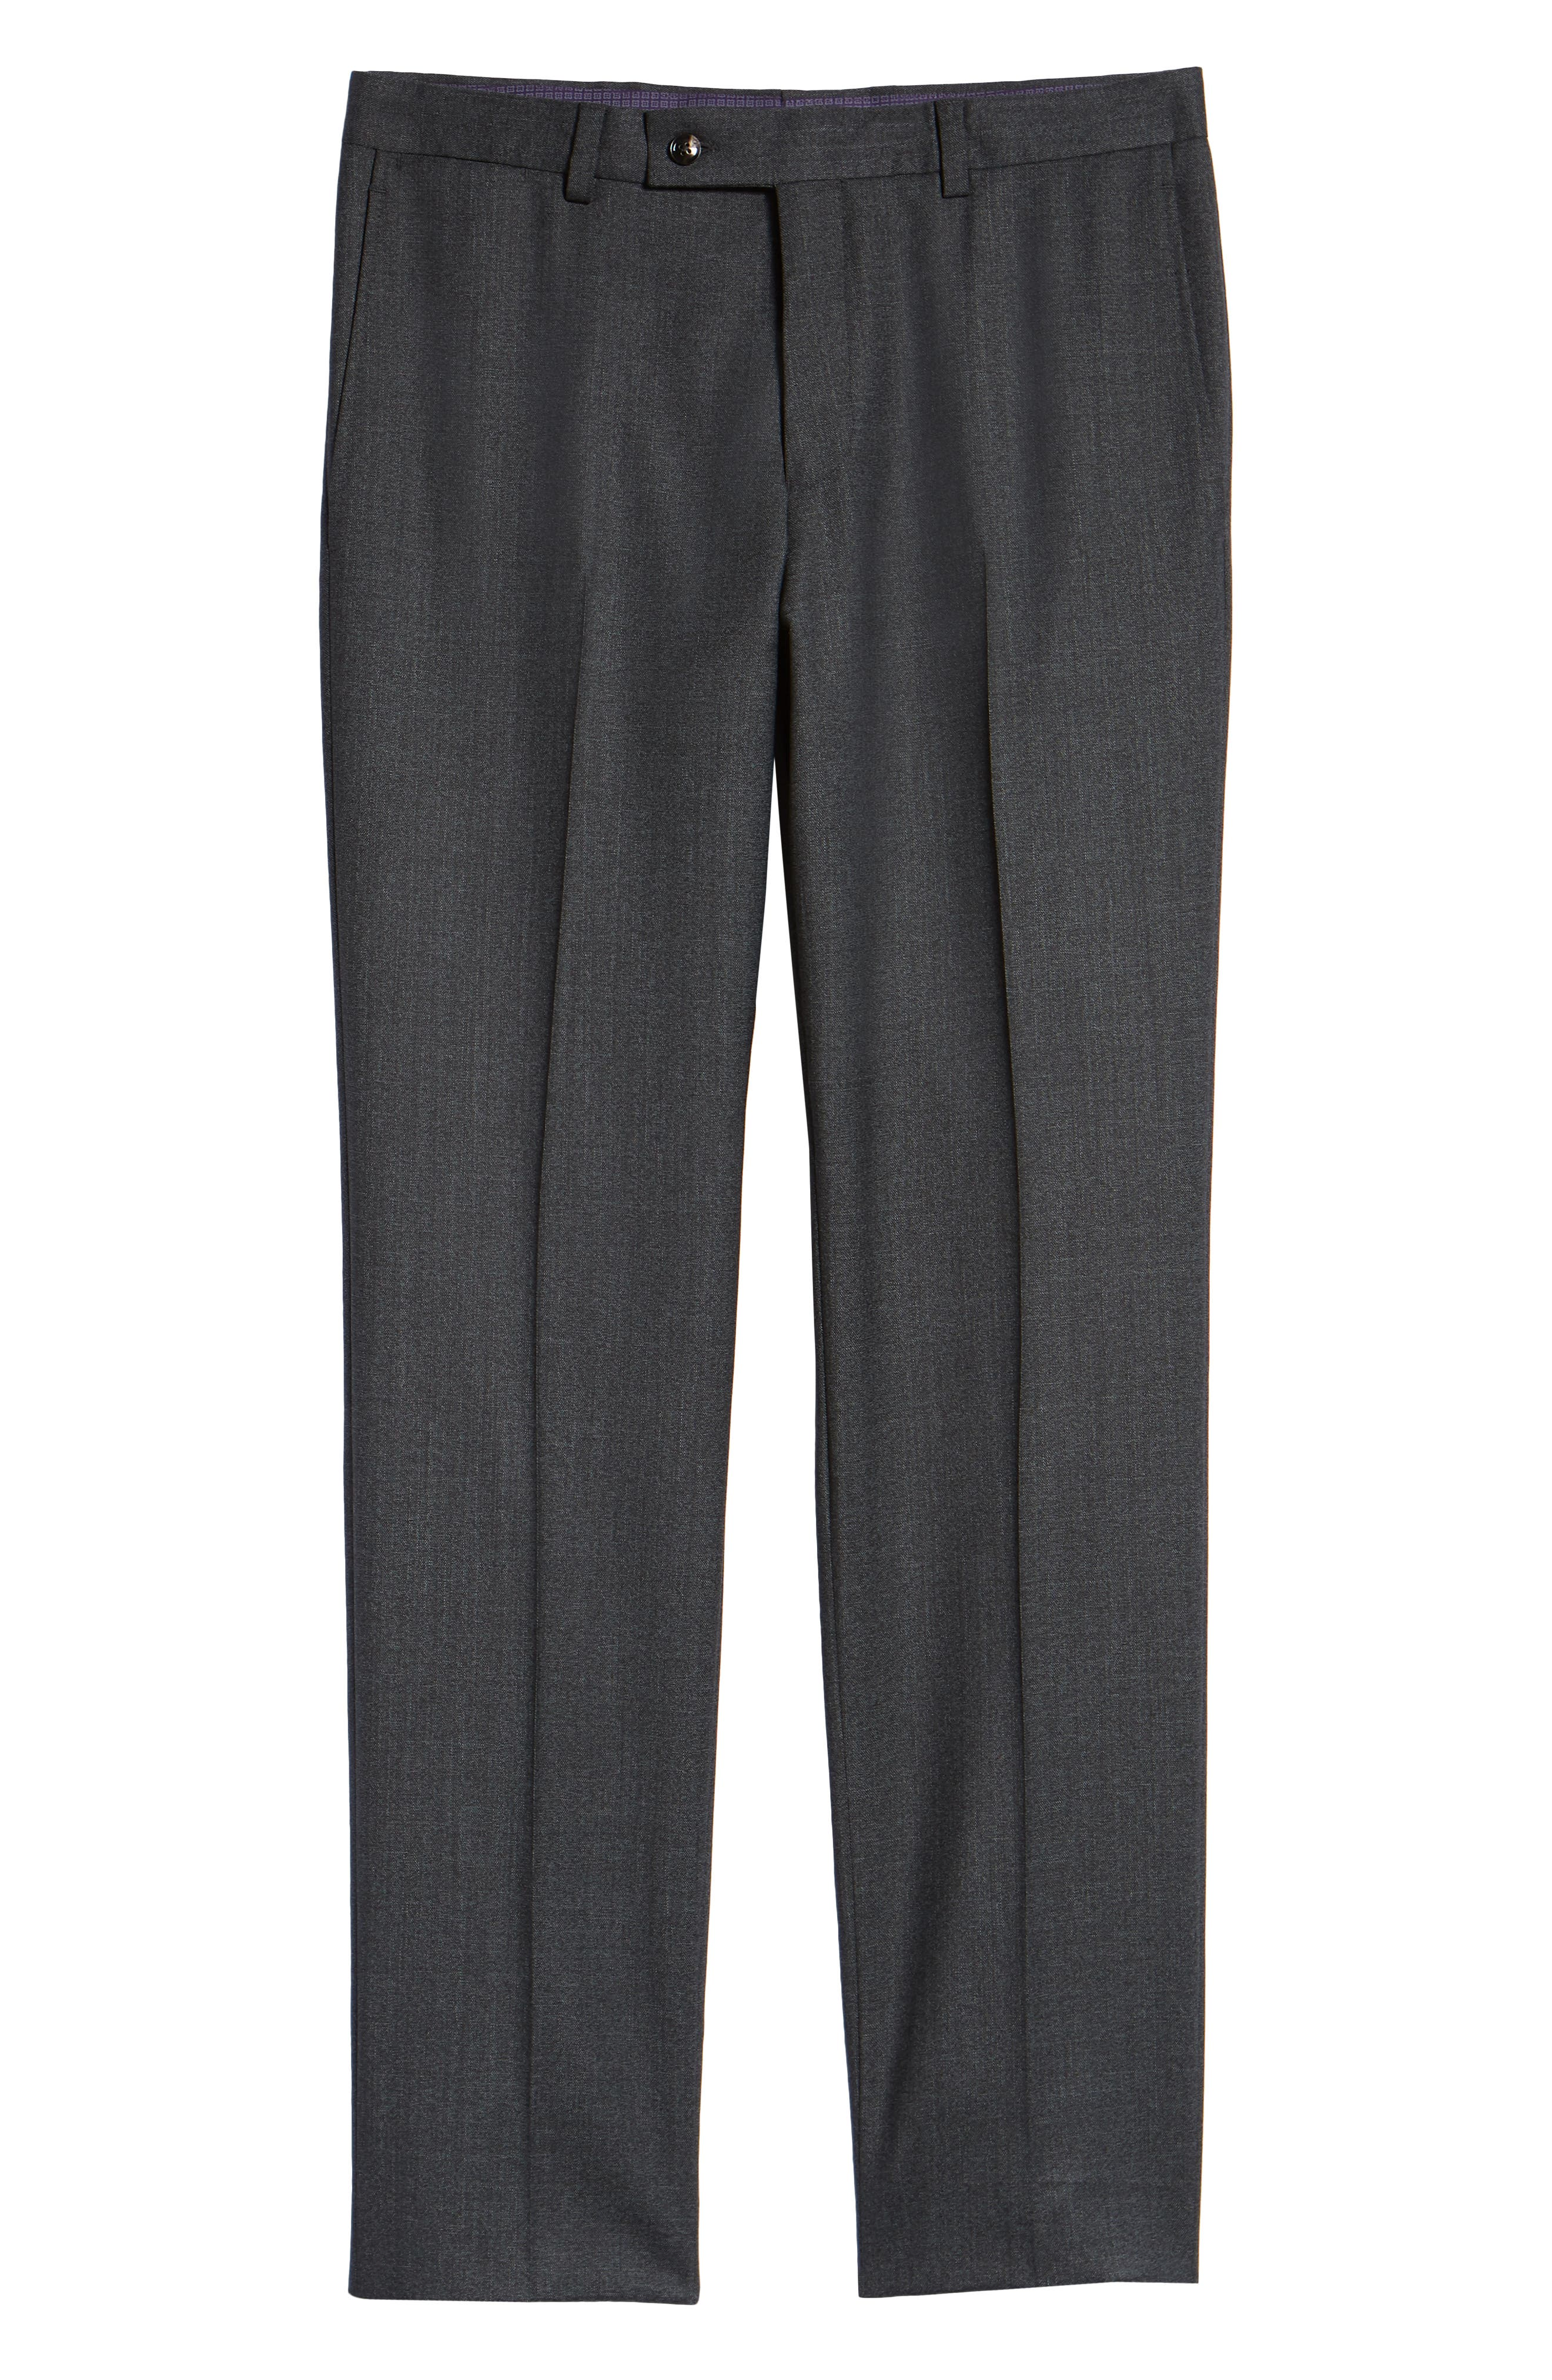 Jefferson Flat Front Solid Wool Trousers,                             Alternate thumbnail 6, color,                             GREY